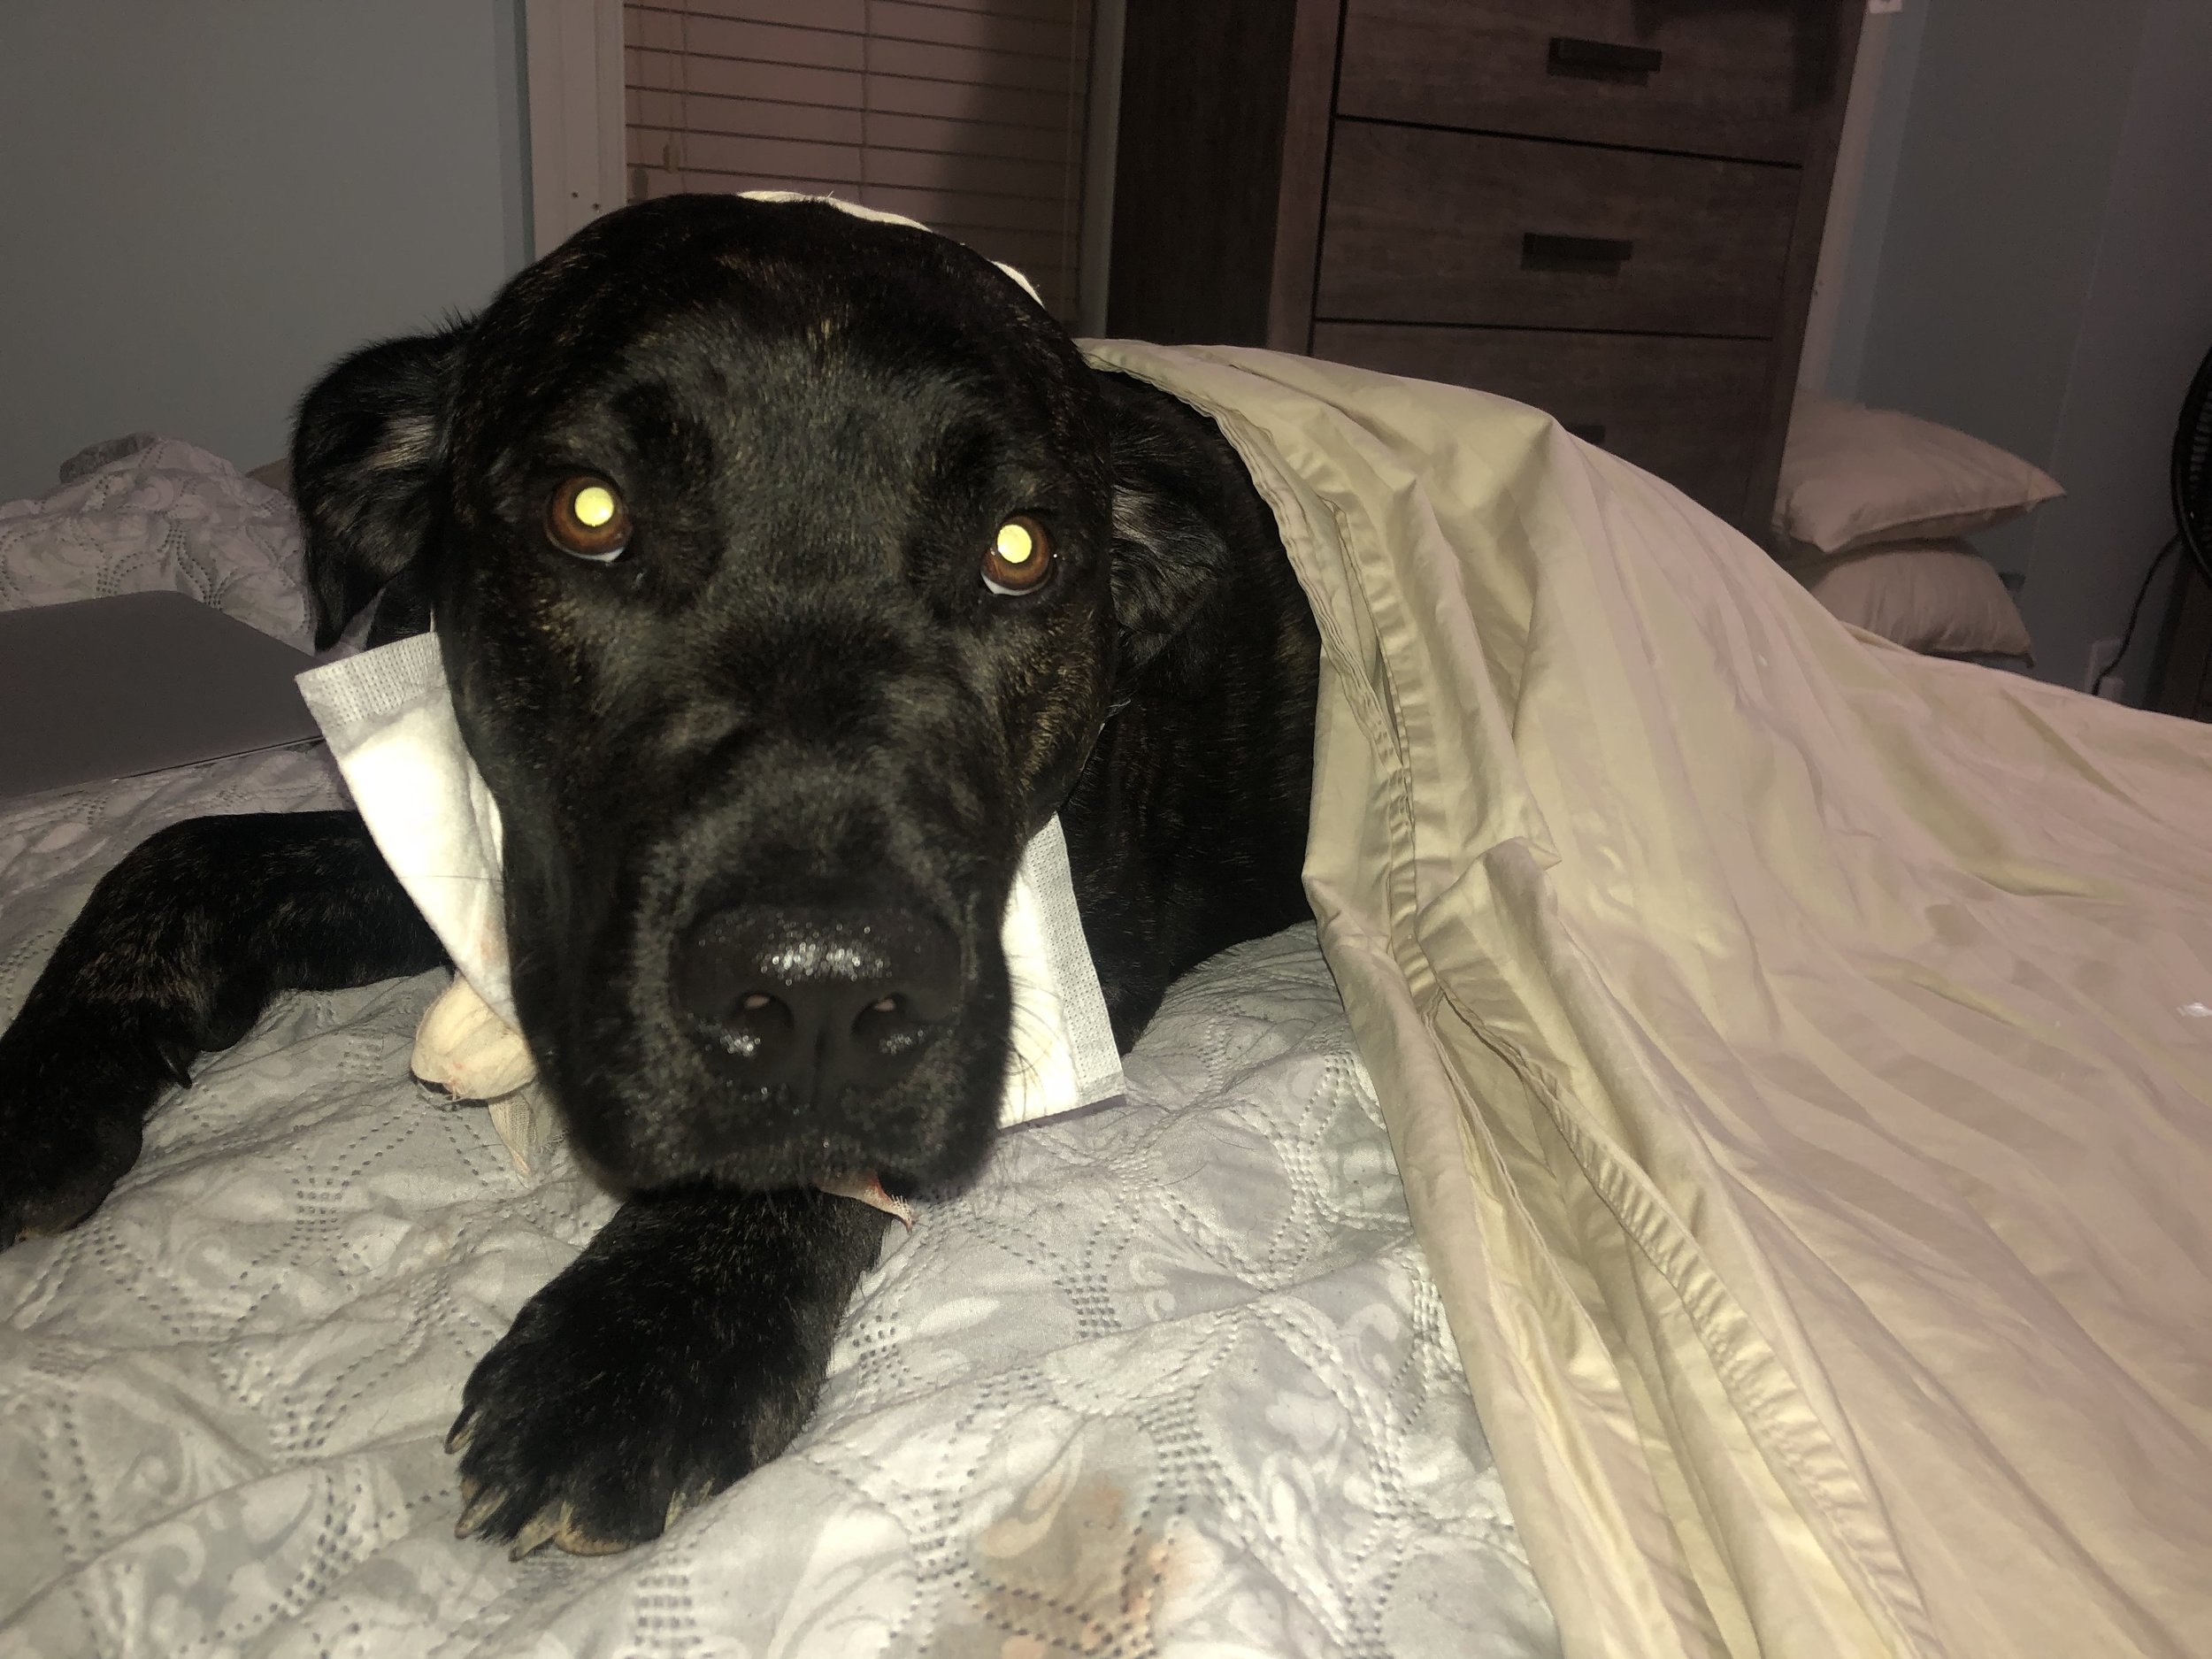 Kobe after we cleaned up the blood and tried to bandage him.